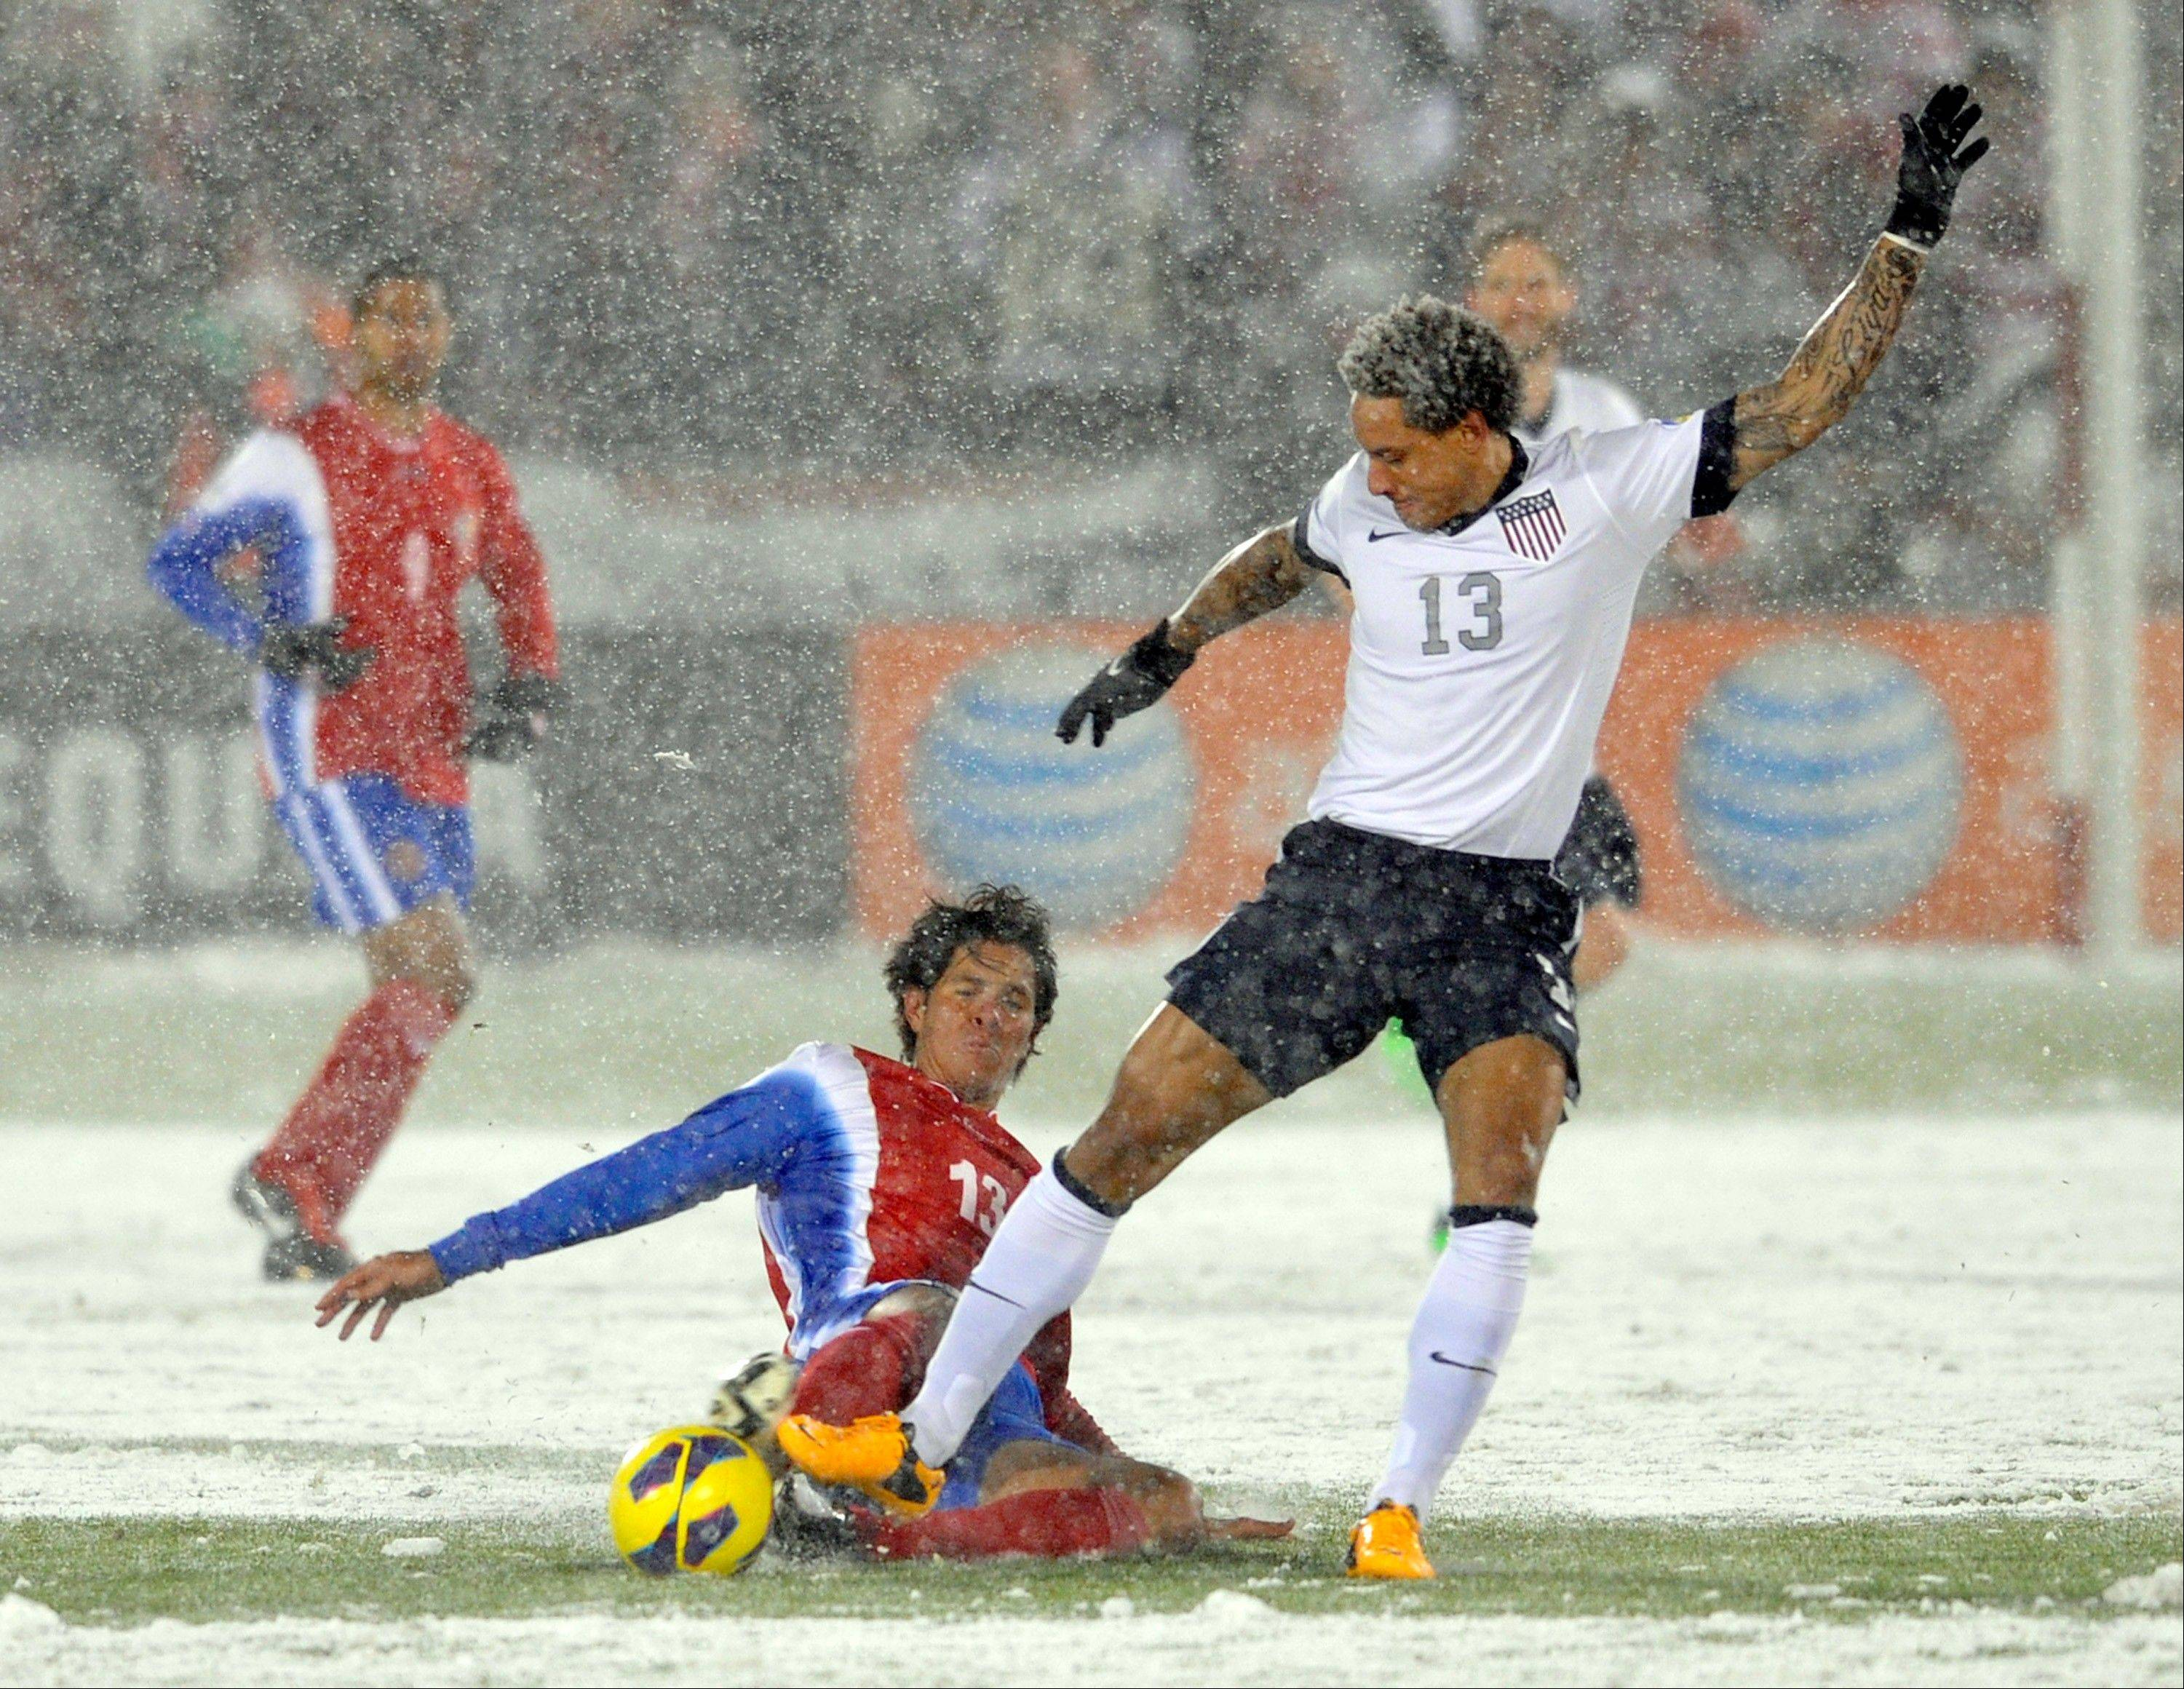 Costa Rica midfielder Ariel Rodgriguez, front left, tackles United States midfielder Jermaine Jones, right, during the first half of a World Cup qualifier soccer match in Commerce City, Colo., Friday, March 22, 2013.